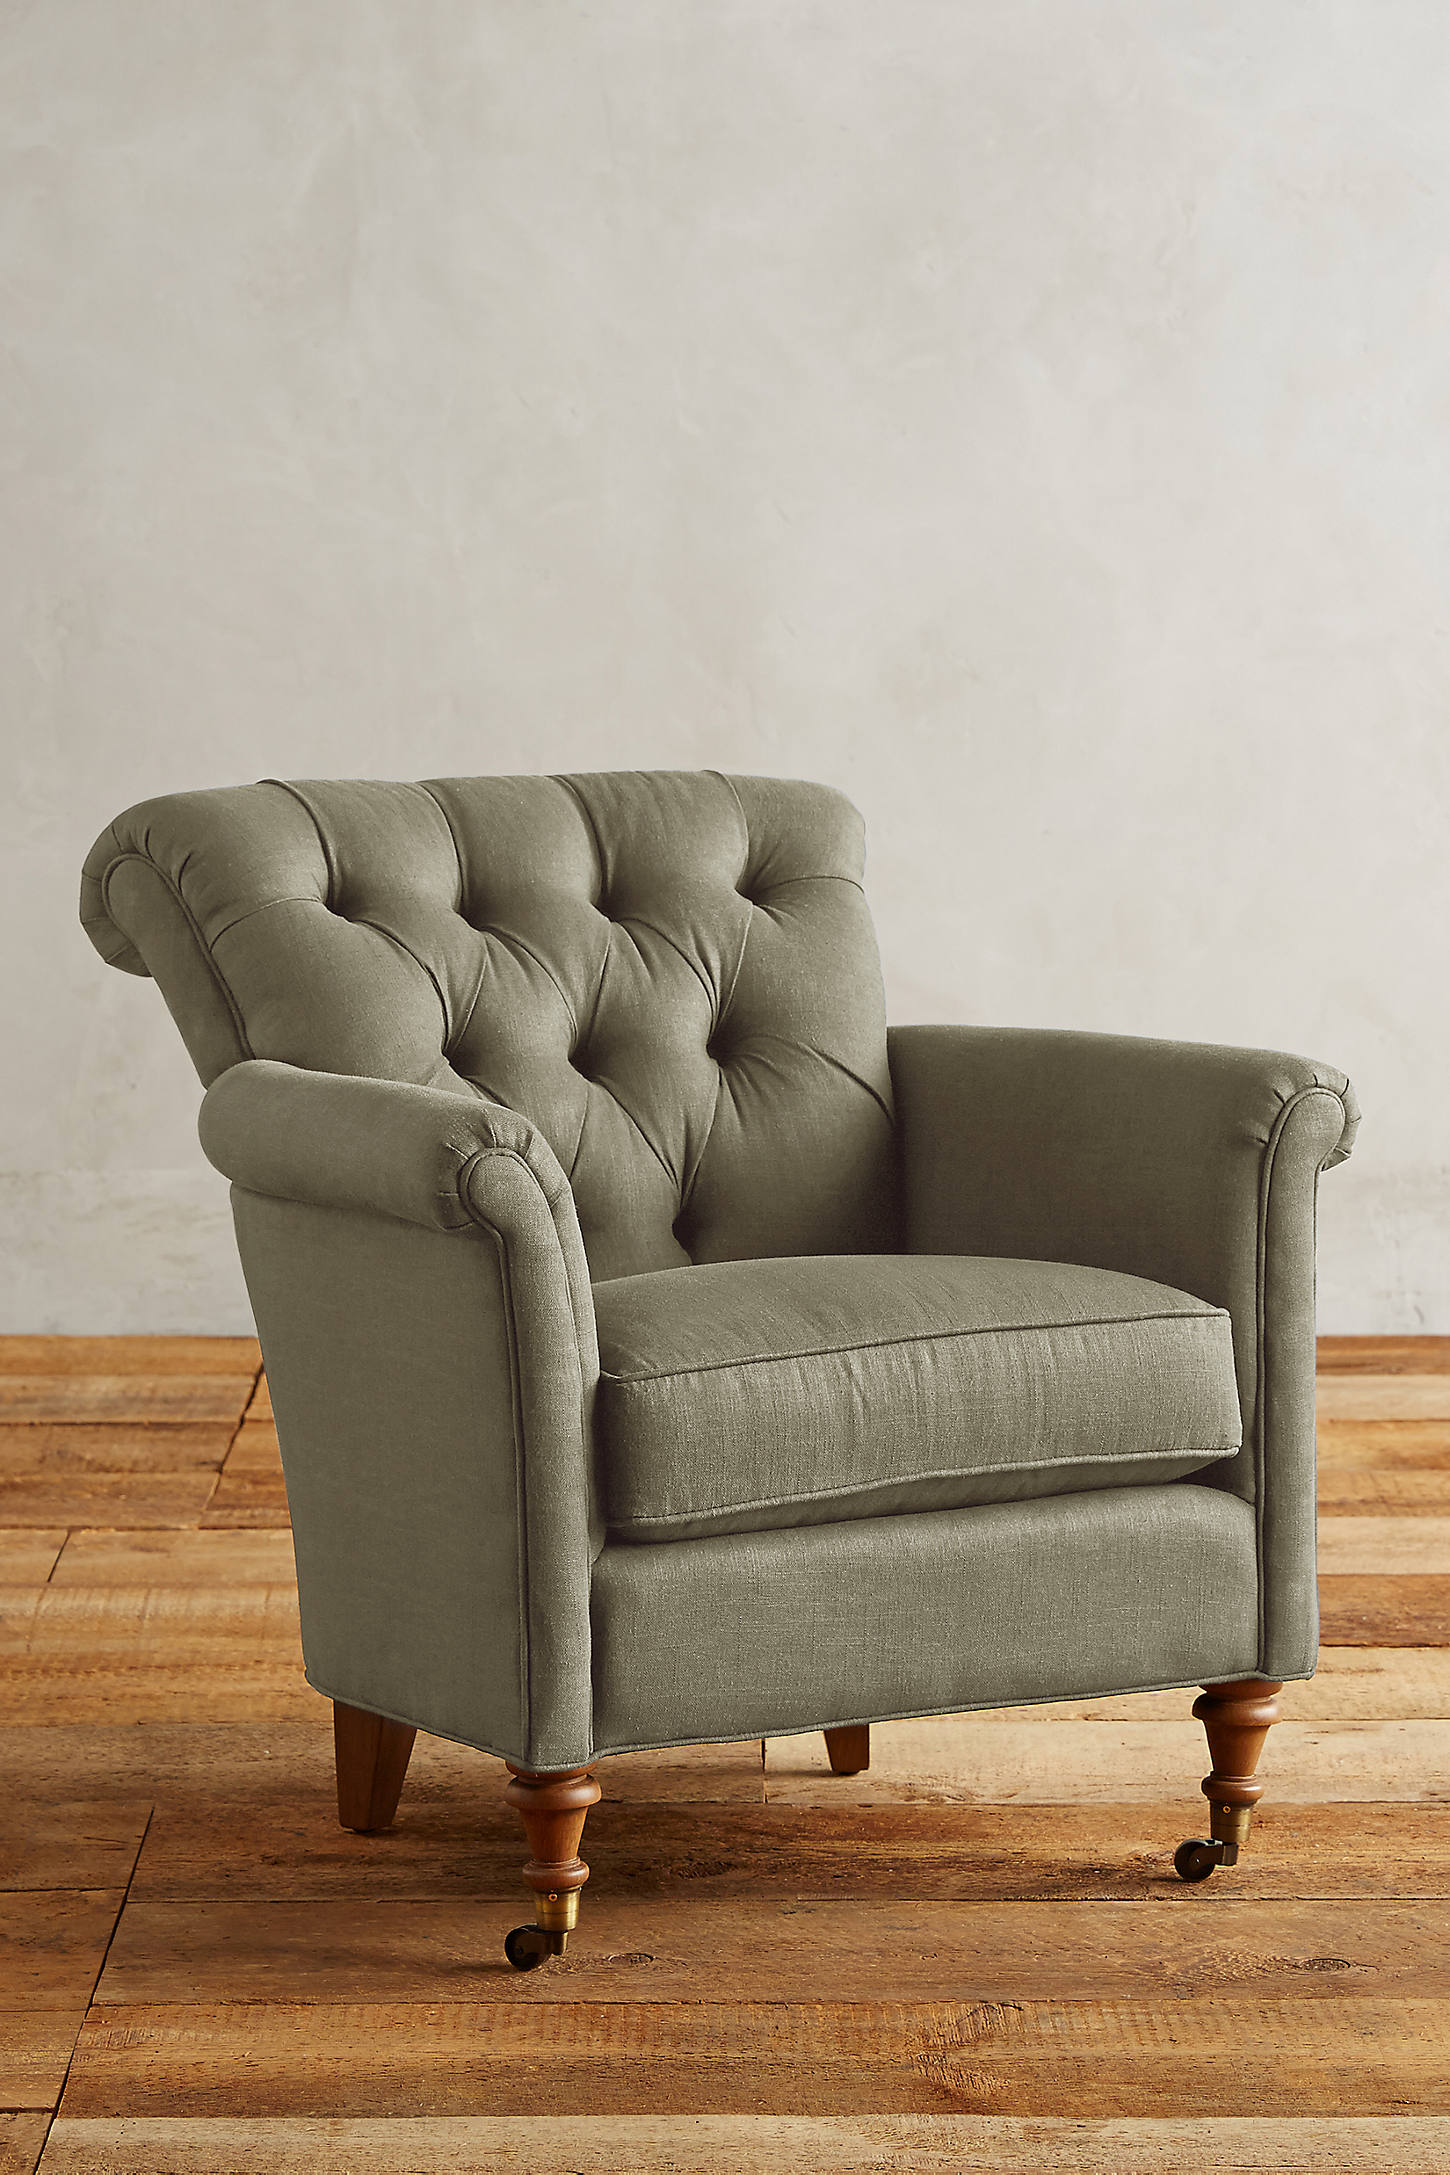 Linen Gwinnette Chair